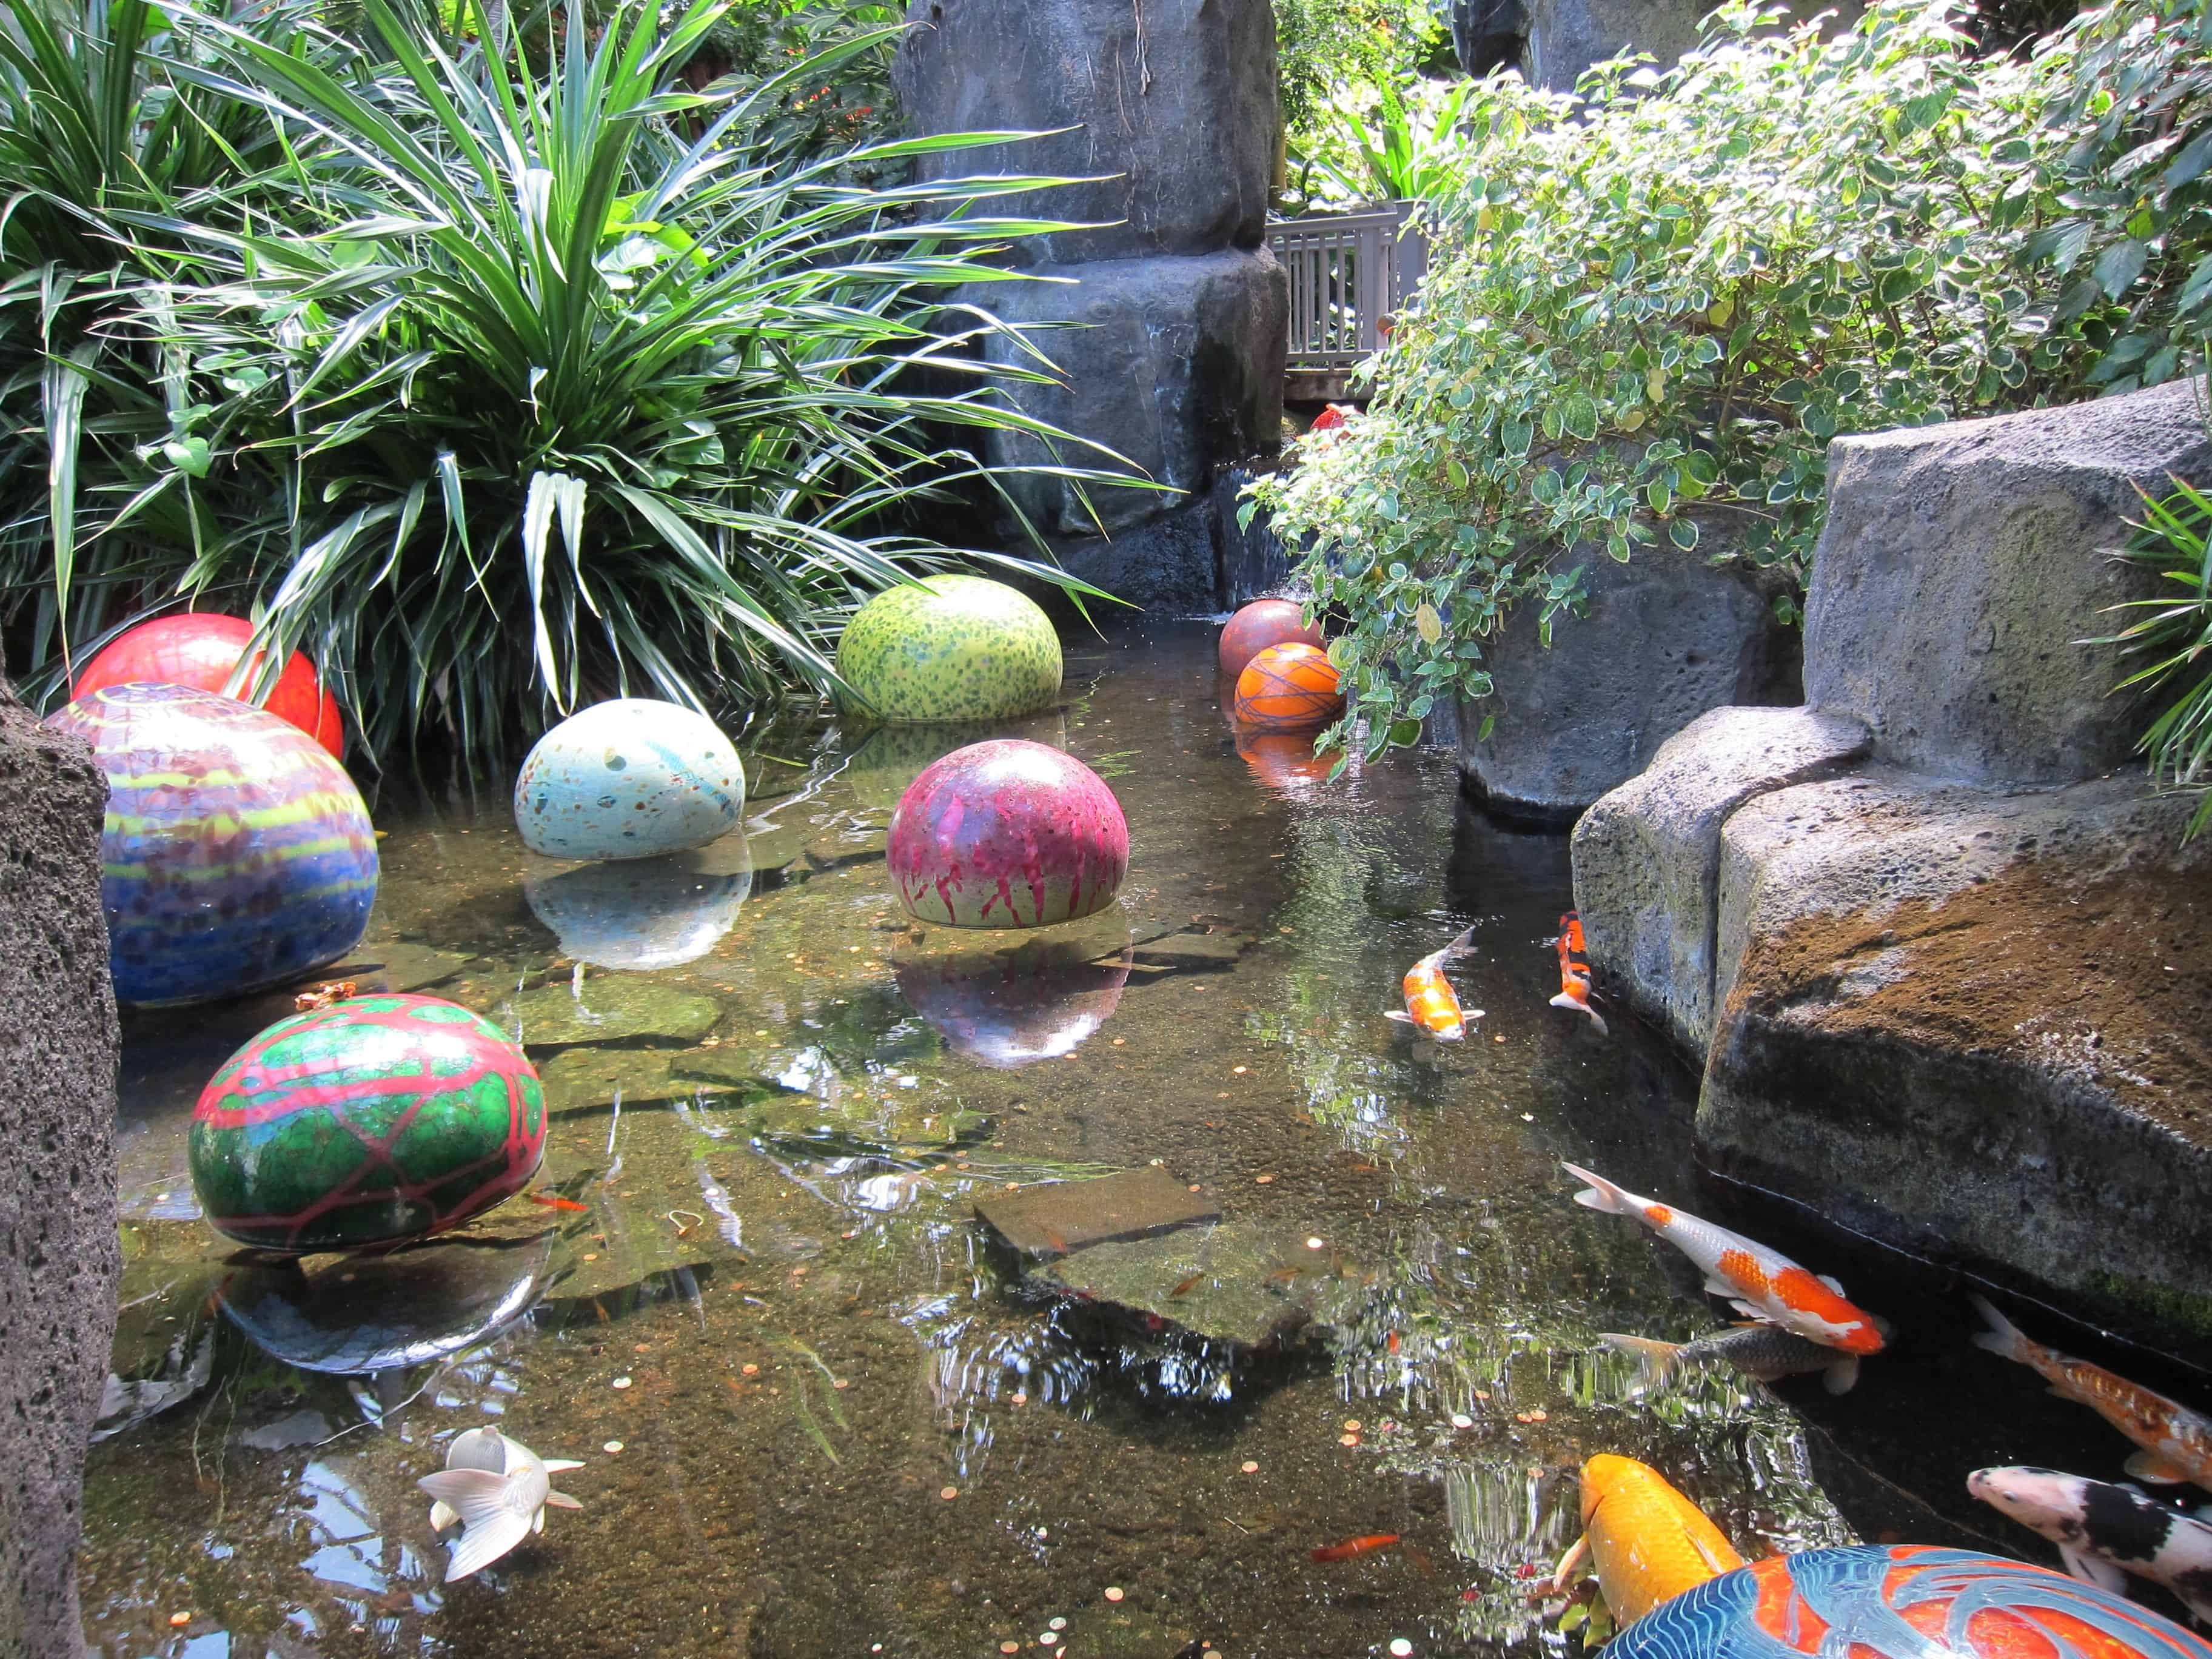 35 Sublime Koi Pond Designs and Water Garden Ideas for ... on Koi Ponds Ideas id=98789